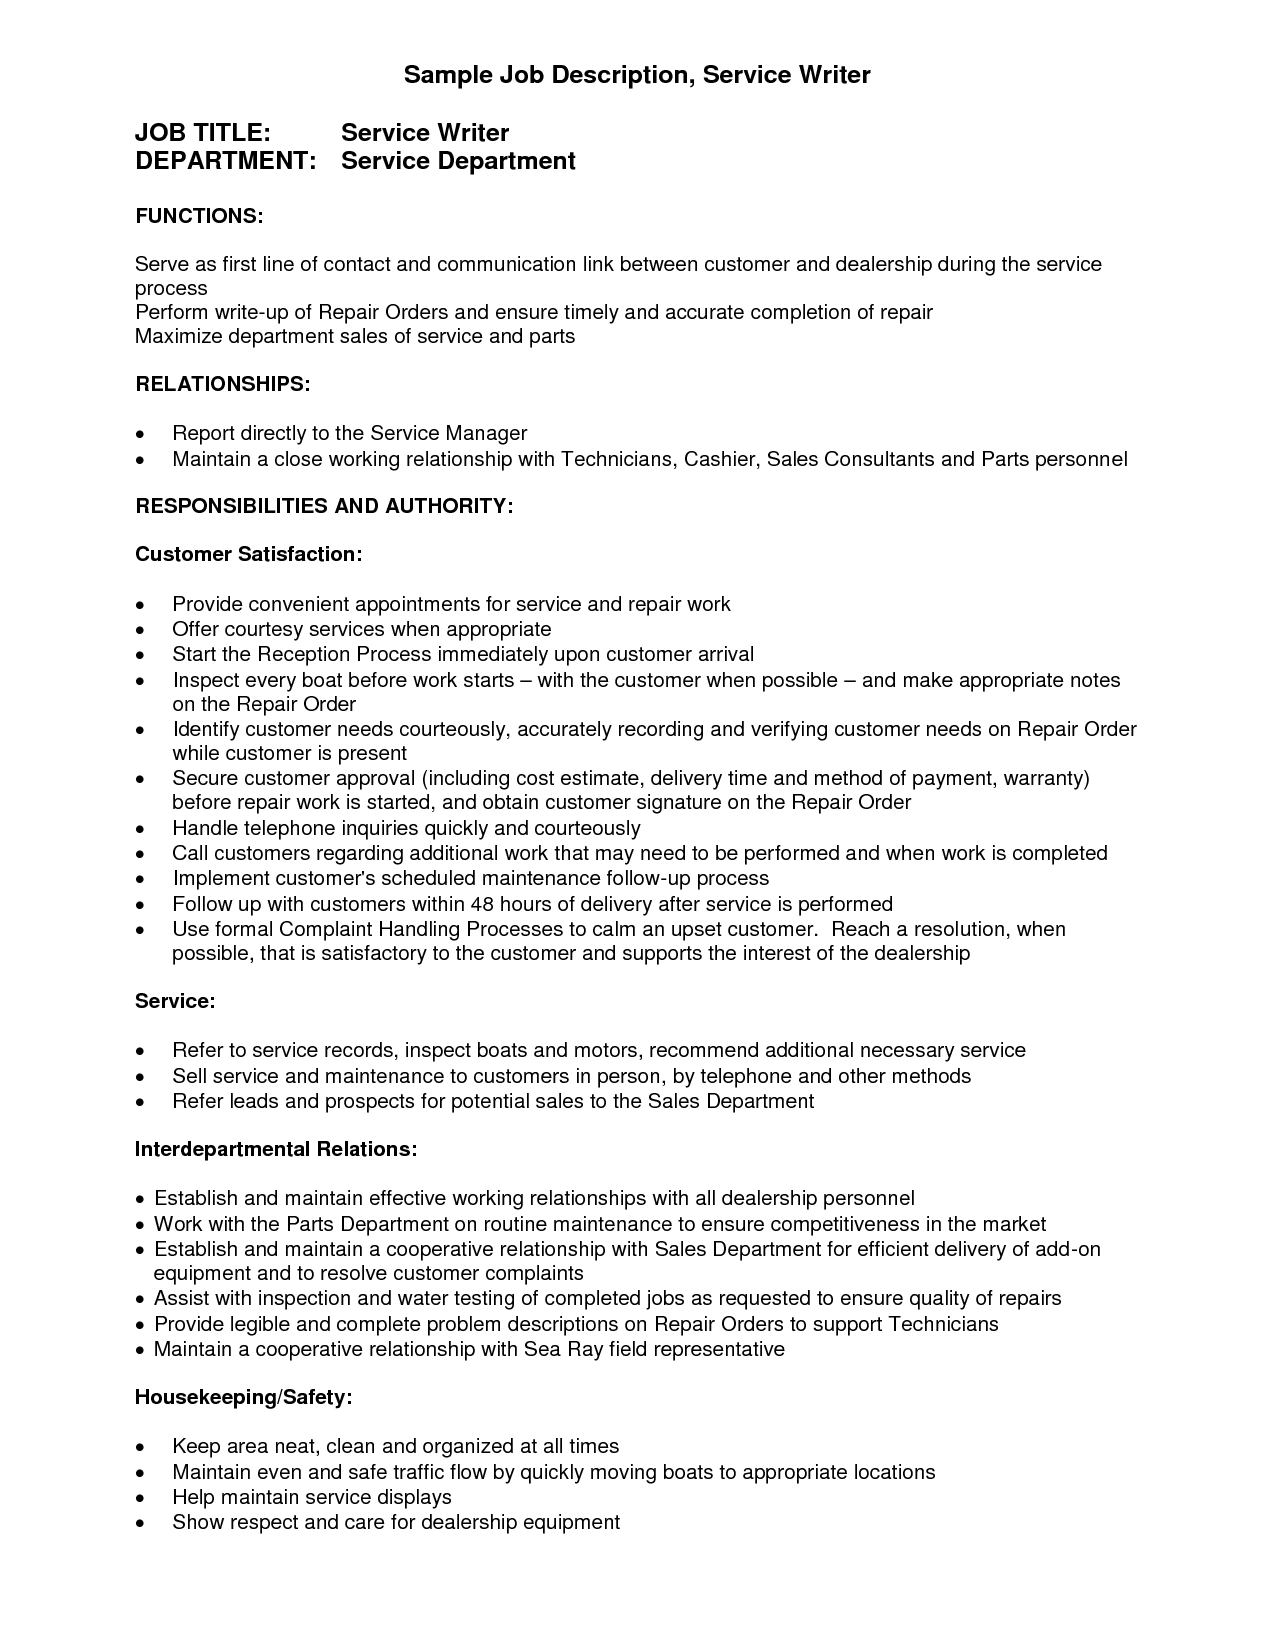 Sales Letter Template Promoting A Service - Resume Writing Service Best Templatewriting A Resume Cover Letter